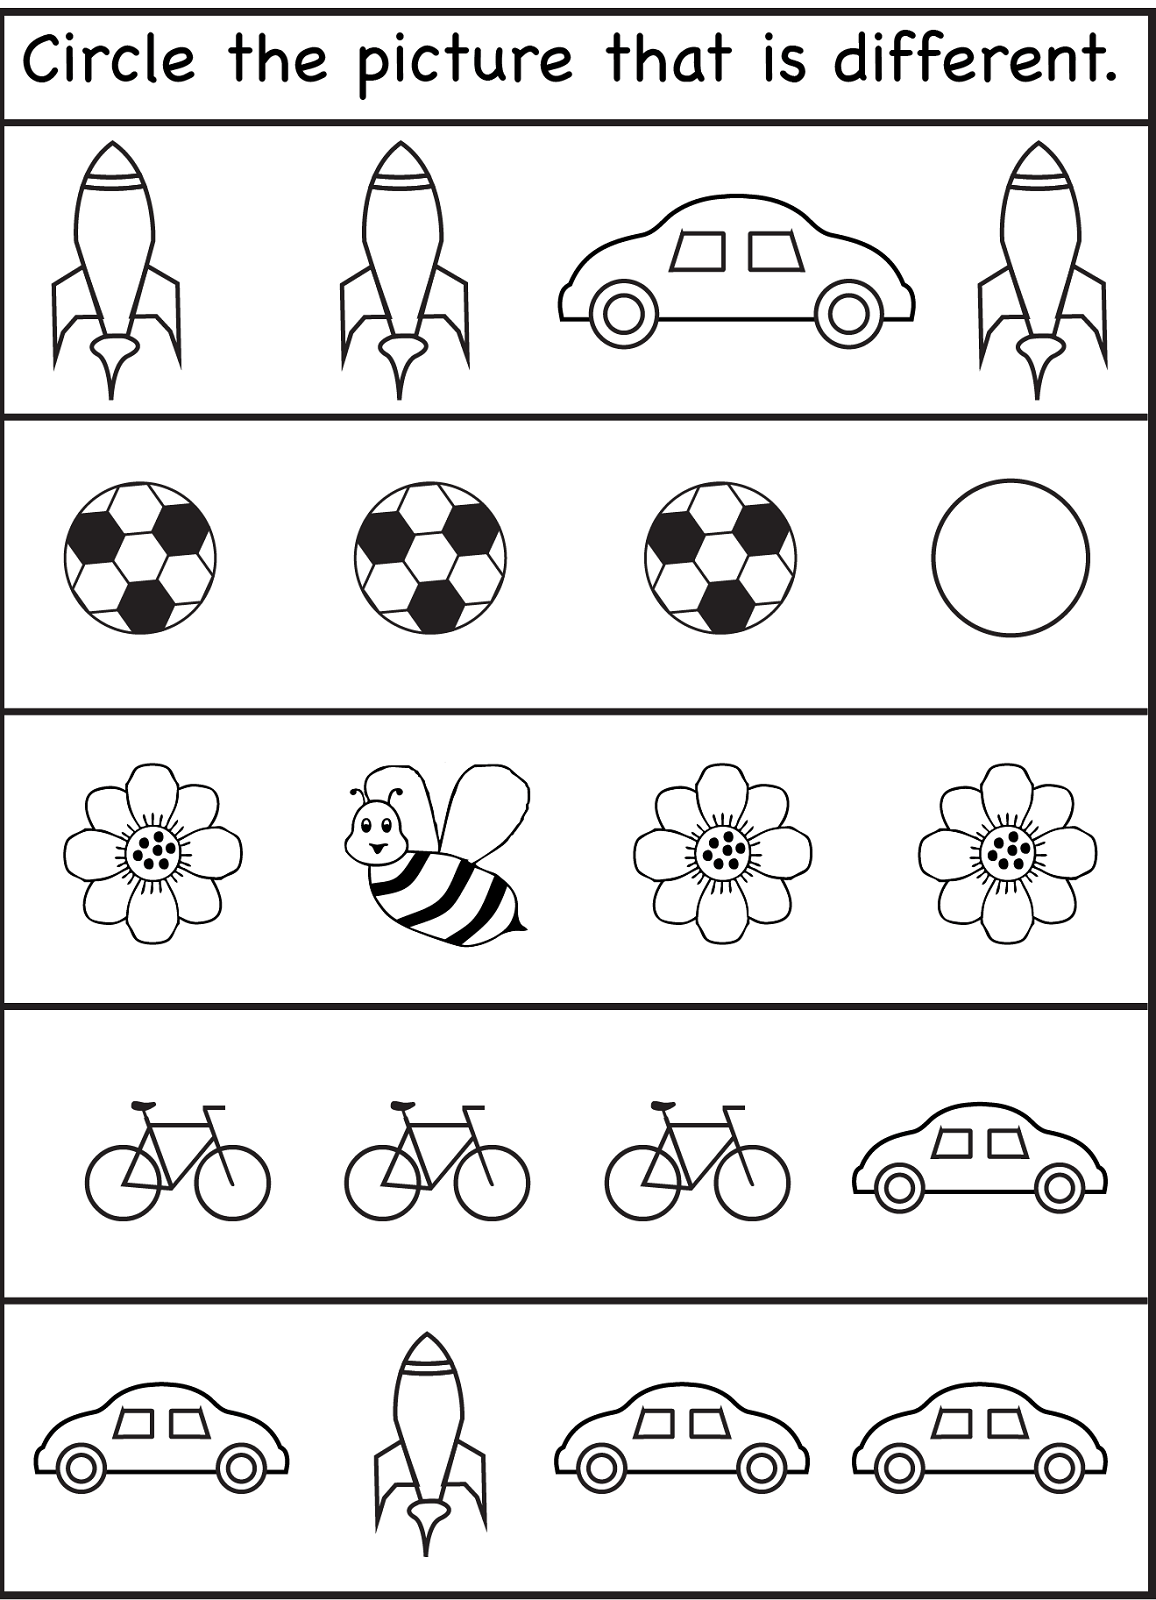 Same Different Worksheets For Kids